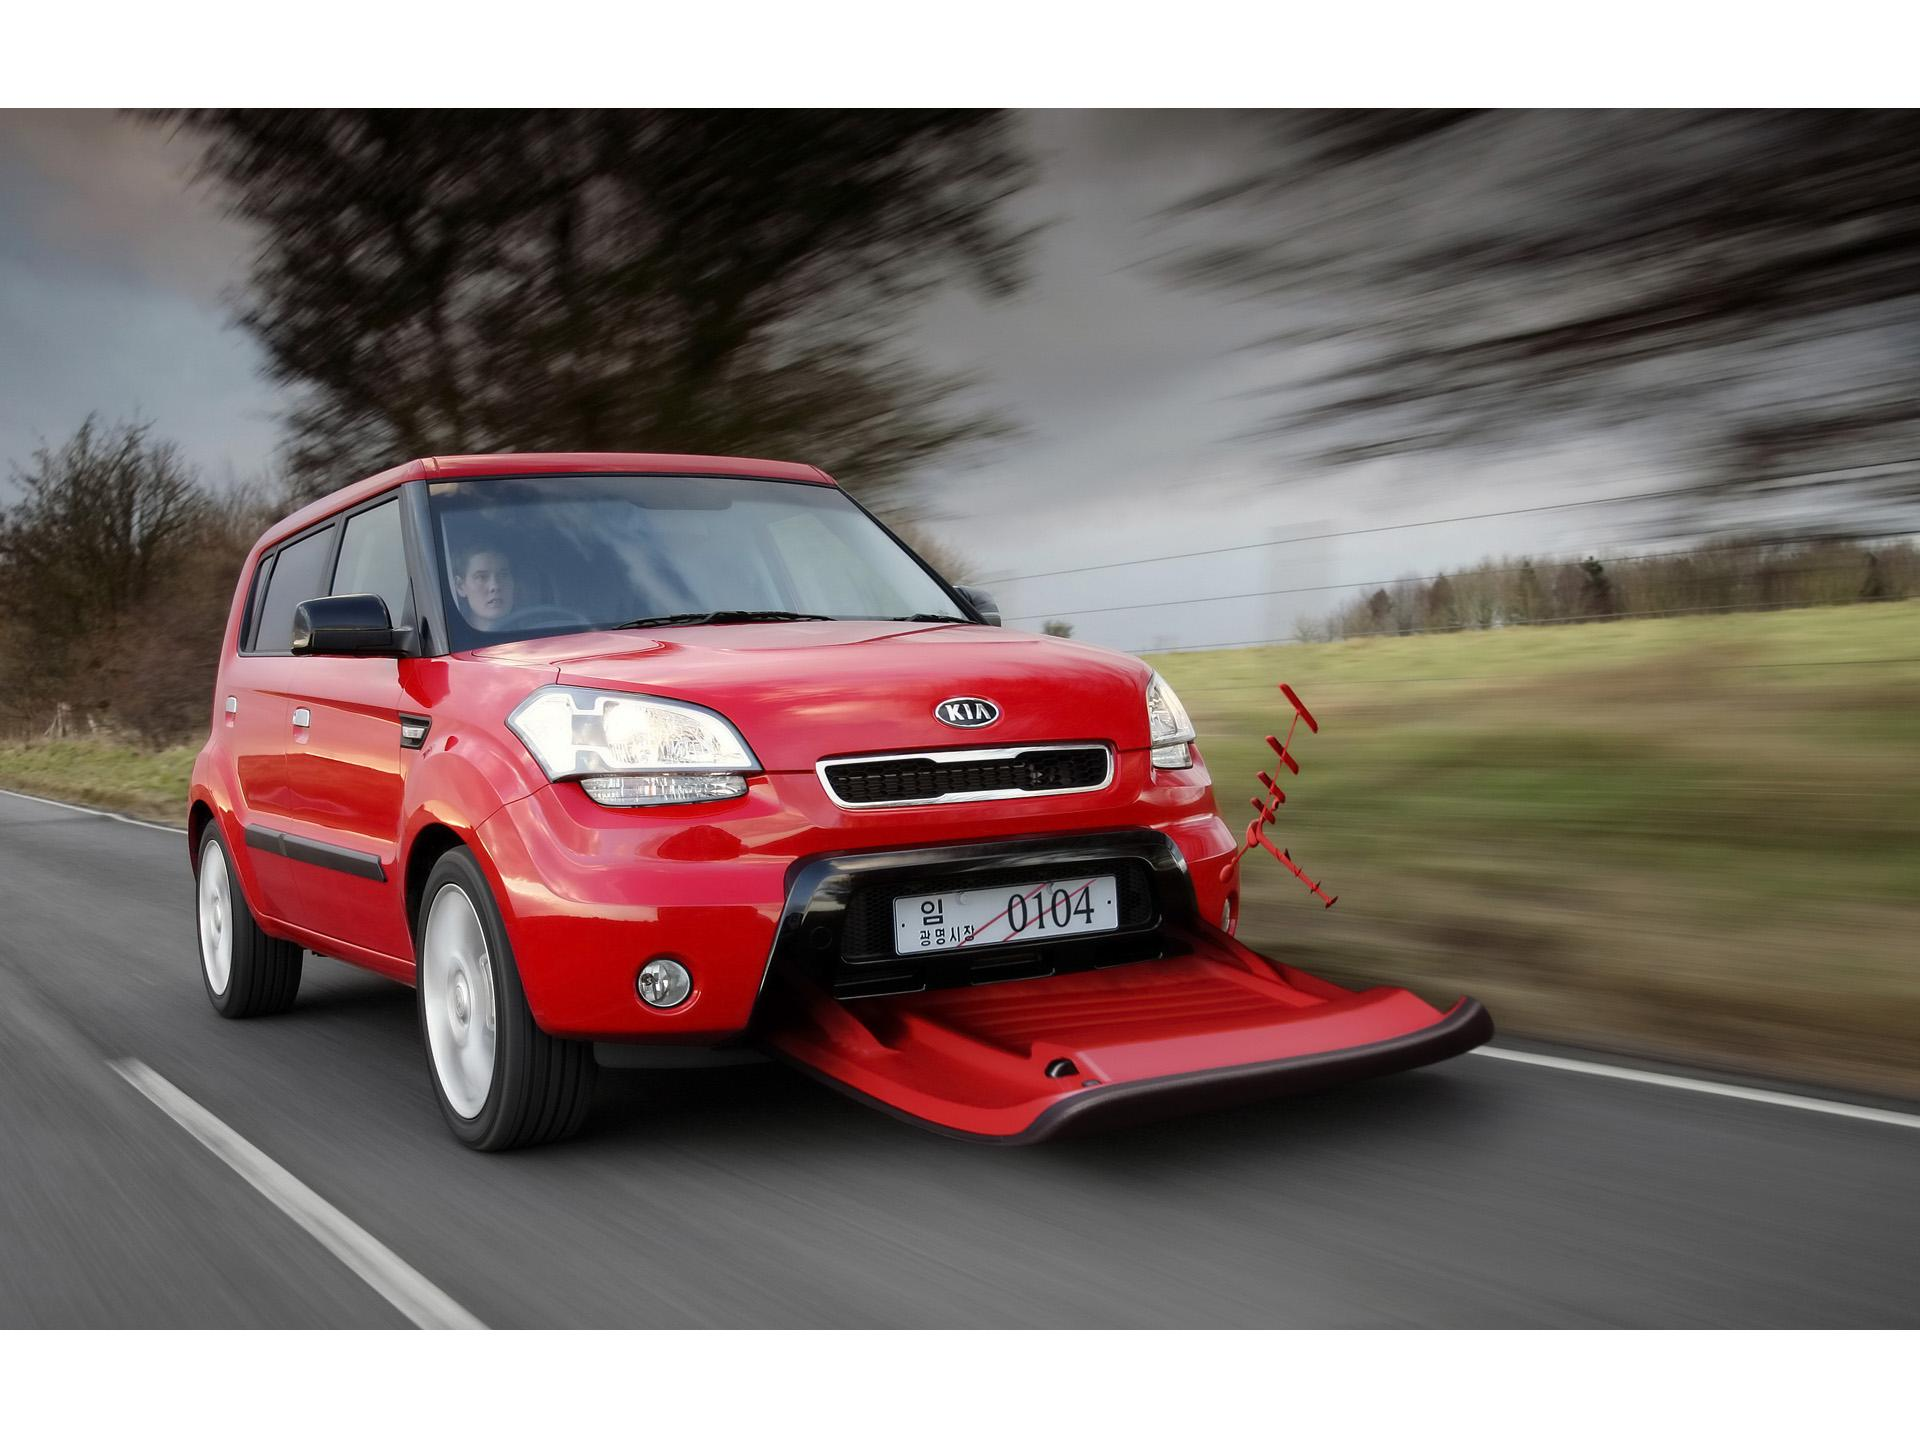 2011 Kia Soul >> 2010 Kia Soul APRIL System News and Information - conceptcarz.com